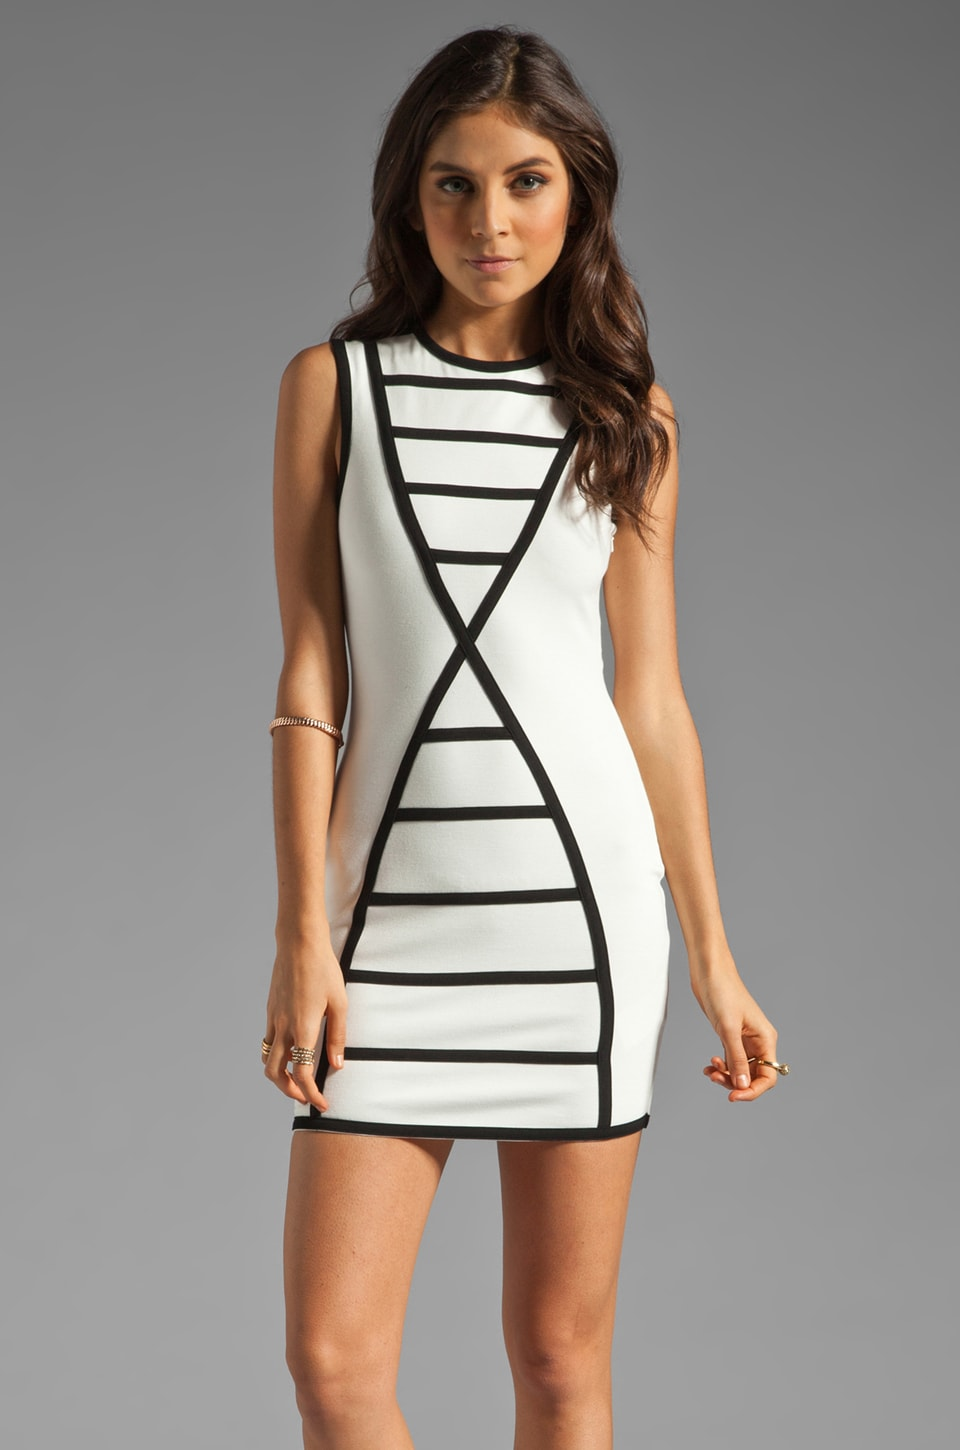 Talulah Melodies Dress in Cream/Black